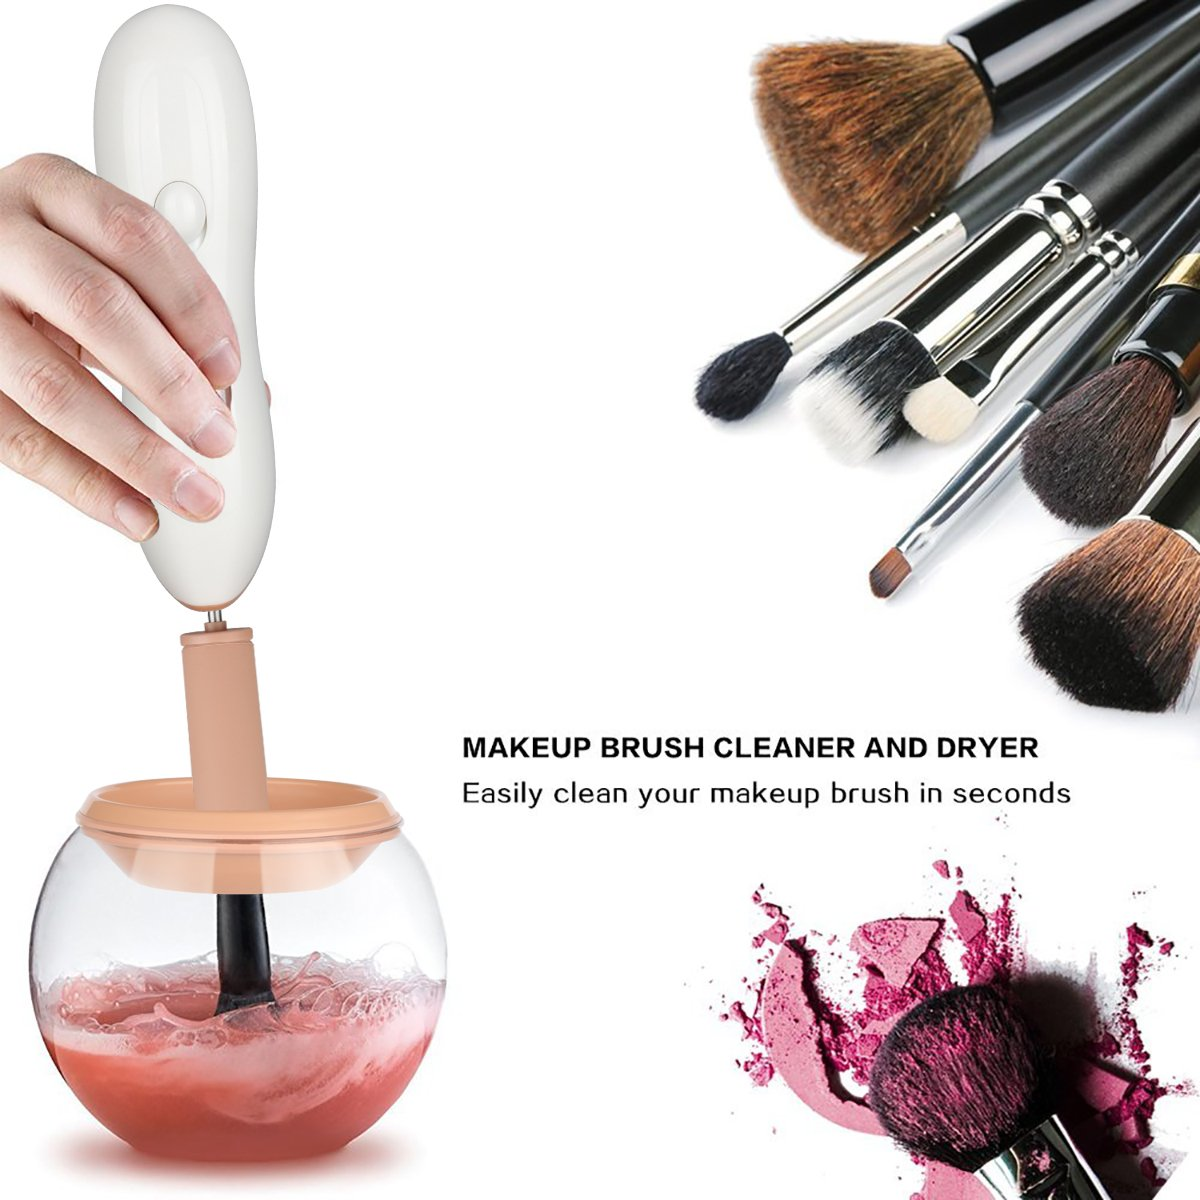 Makeup Brush Cleaner - Deep Clean and Dry All Size Makeup Brushes 360 Degree Rotation with 8 Rubber Collars In Seconds (White) Madage k9